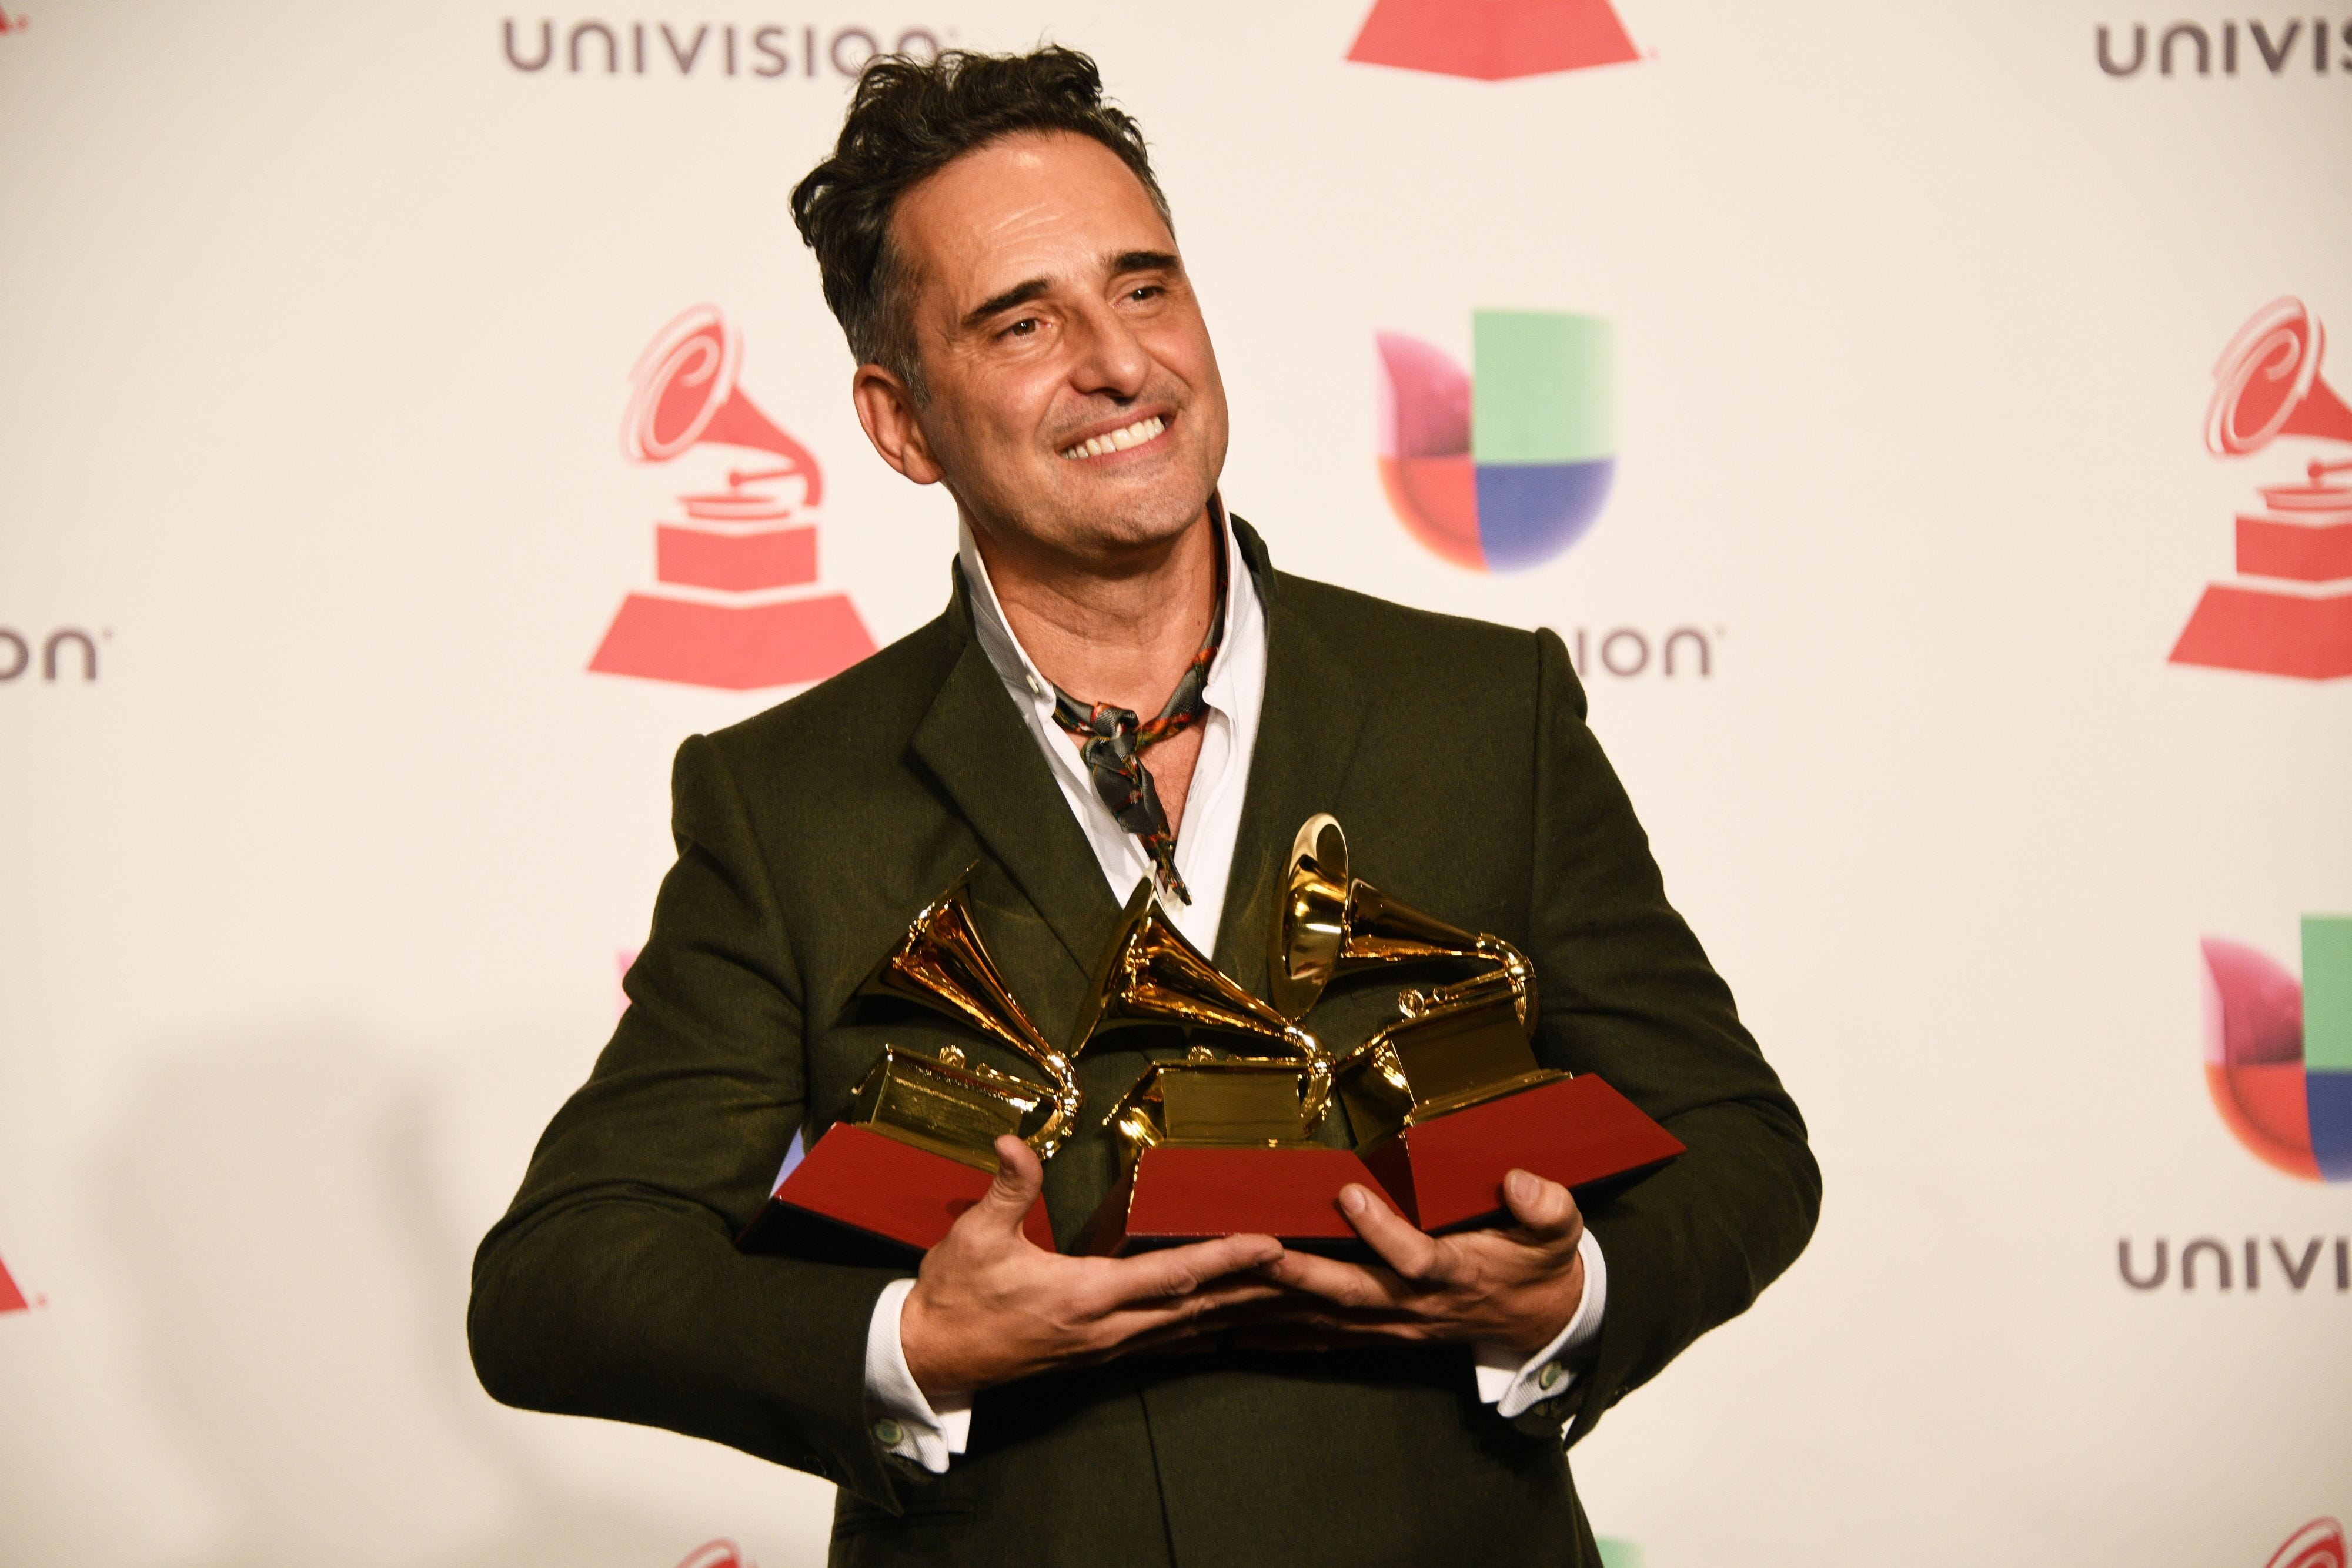 Latin Grammys 2018 winners list: See who took the night's top awards